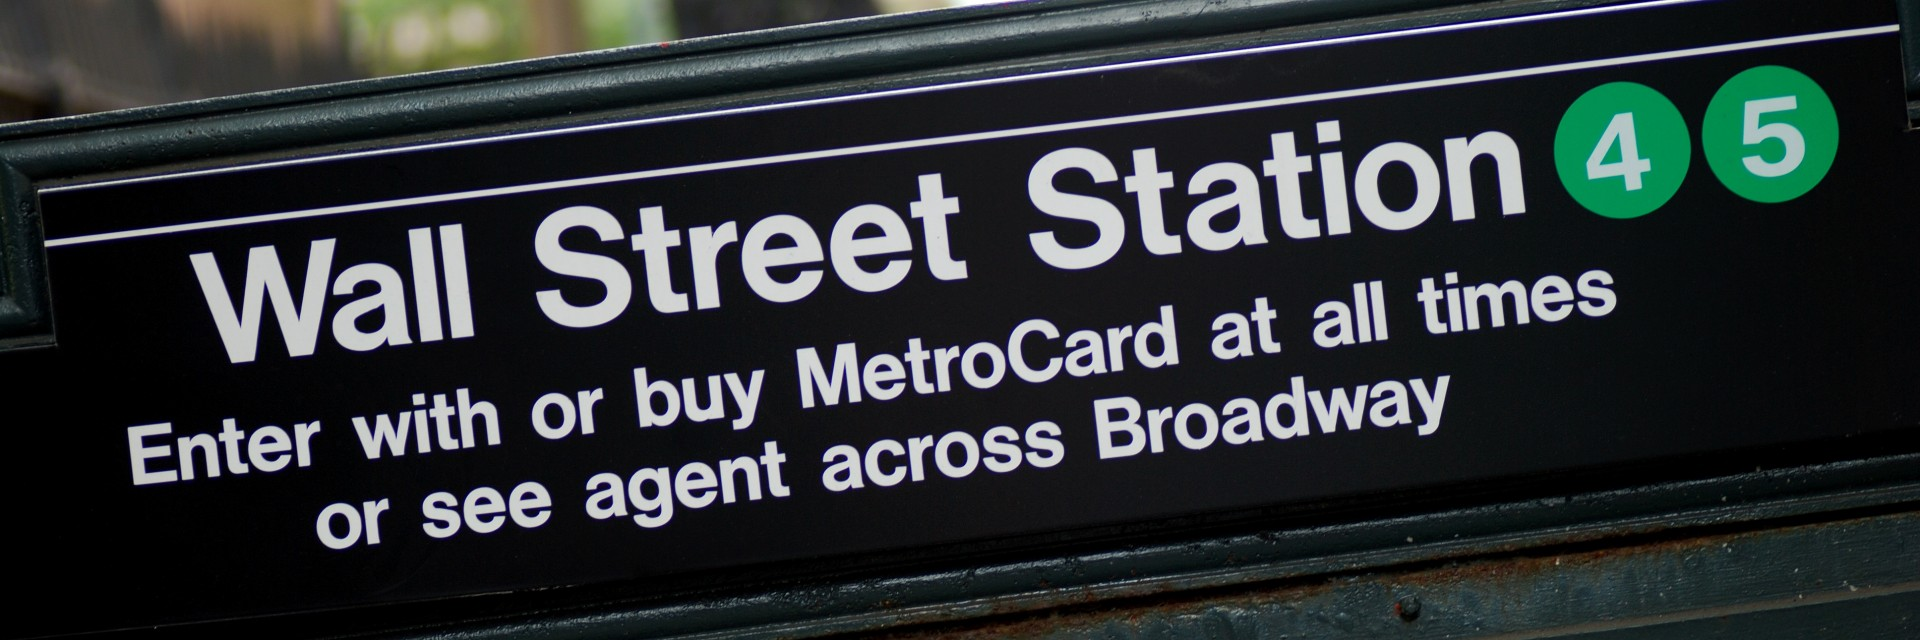 Wall Street subway station is where investment bankers in New York City typically get off at to get to the major financial firms downtown